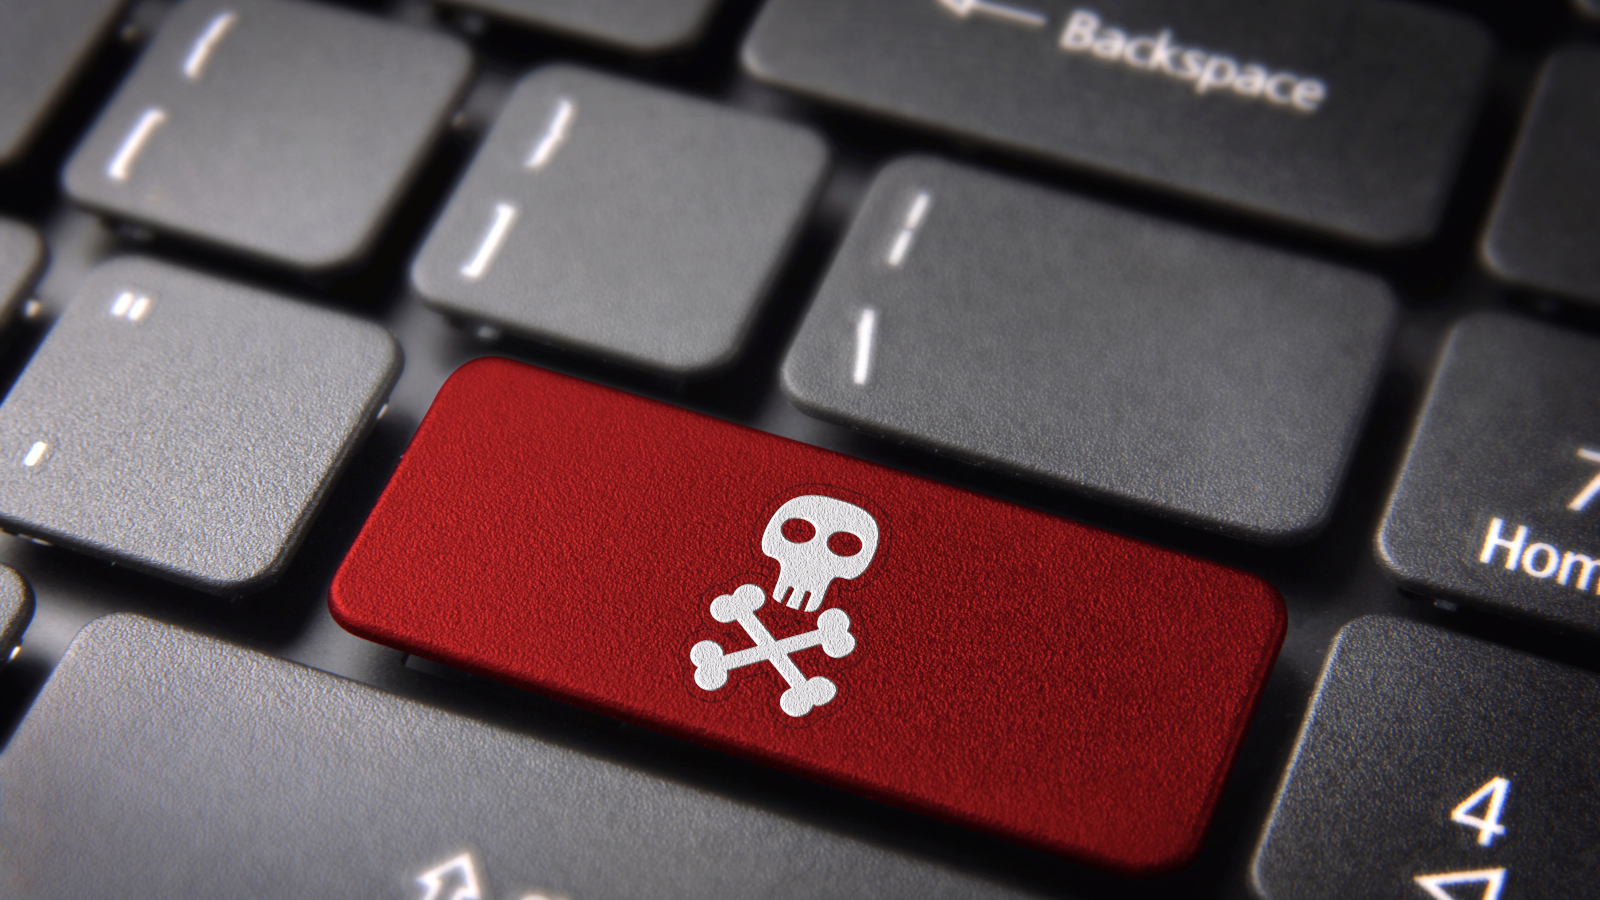 Russian Law Requires Search Engines to Remove Pirate Links